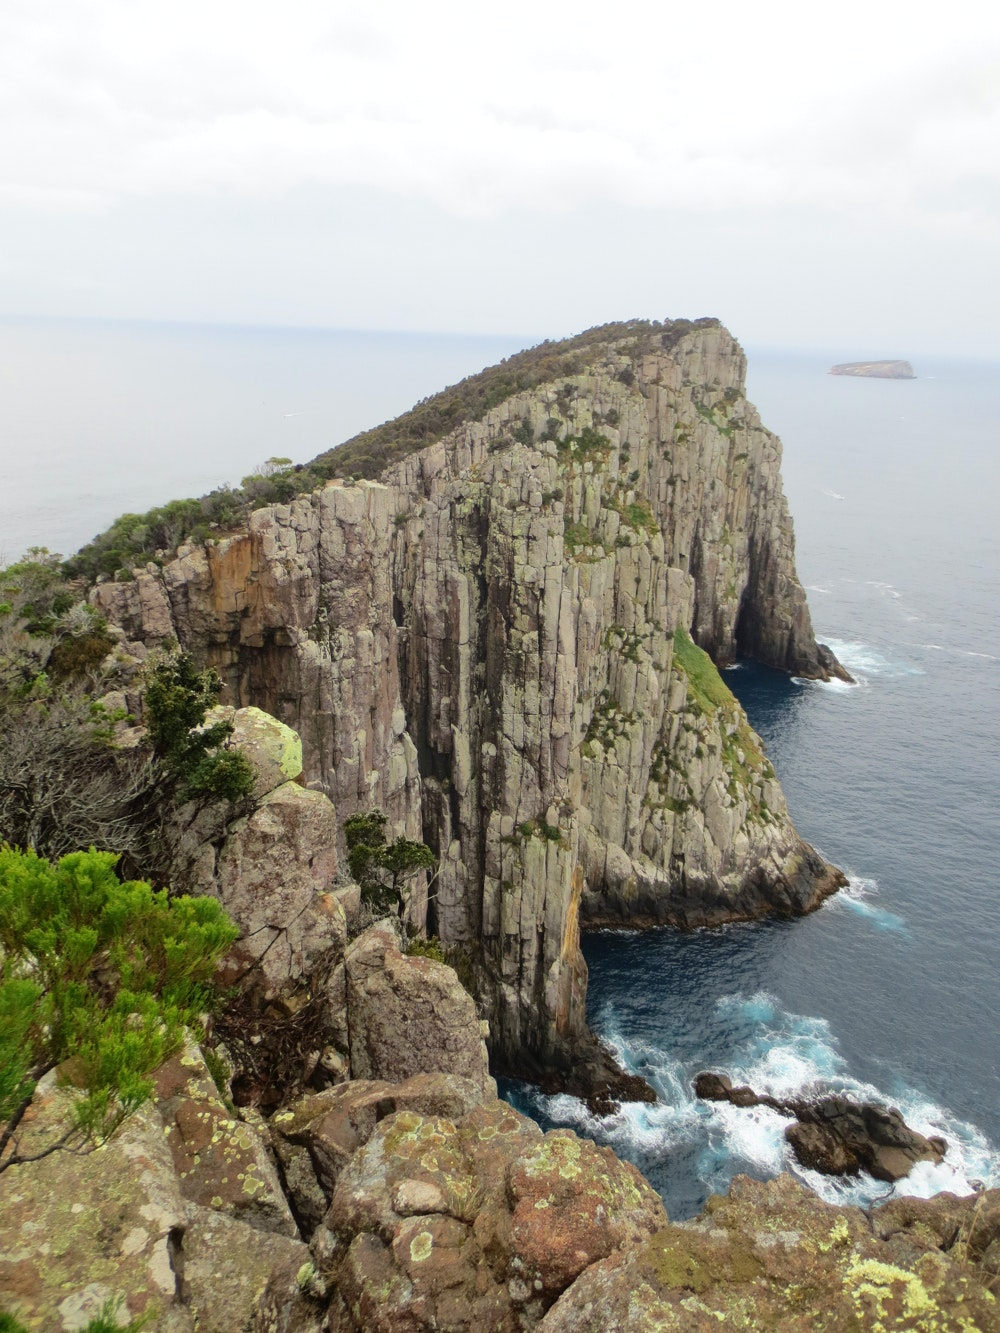 Accessible only by boat - Fortescue Bay